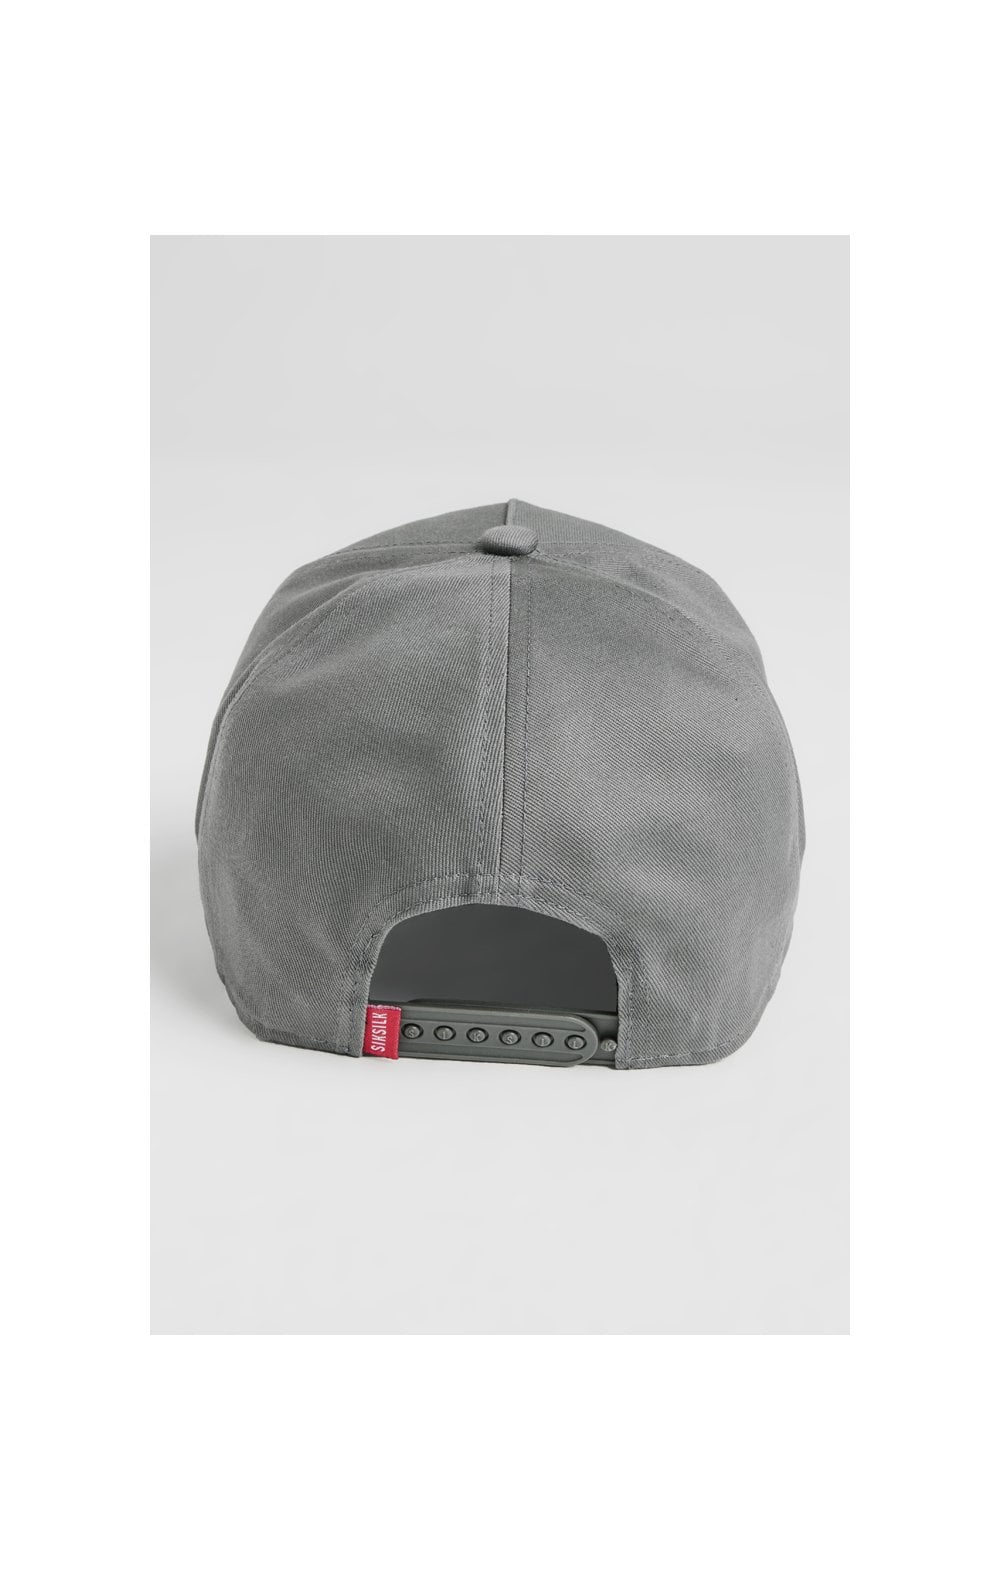 SikSilk Patch Full Trucker - Charcoal (6)